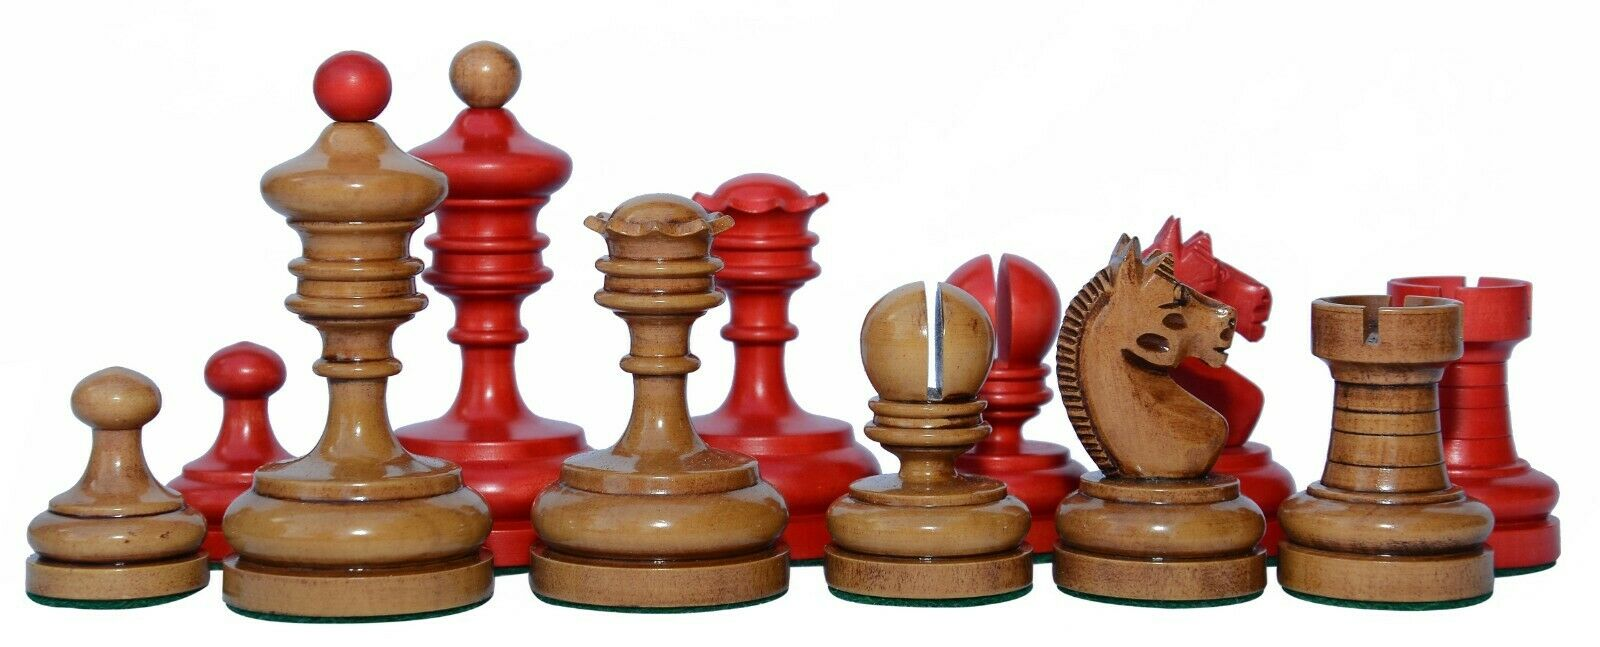 Reproduction Vintage 1930 German Knubbel 3.5  Chess Pieces in Distressed Antique